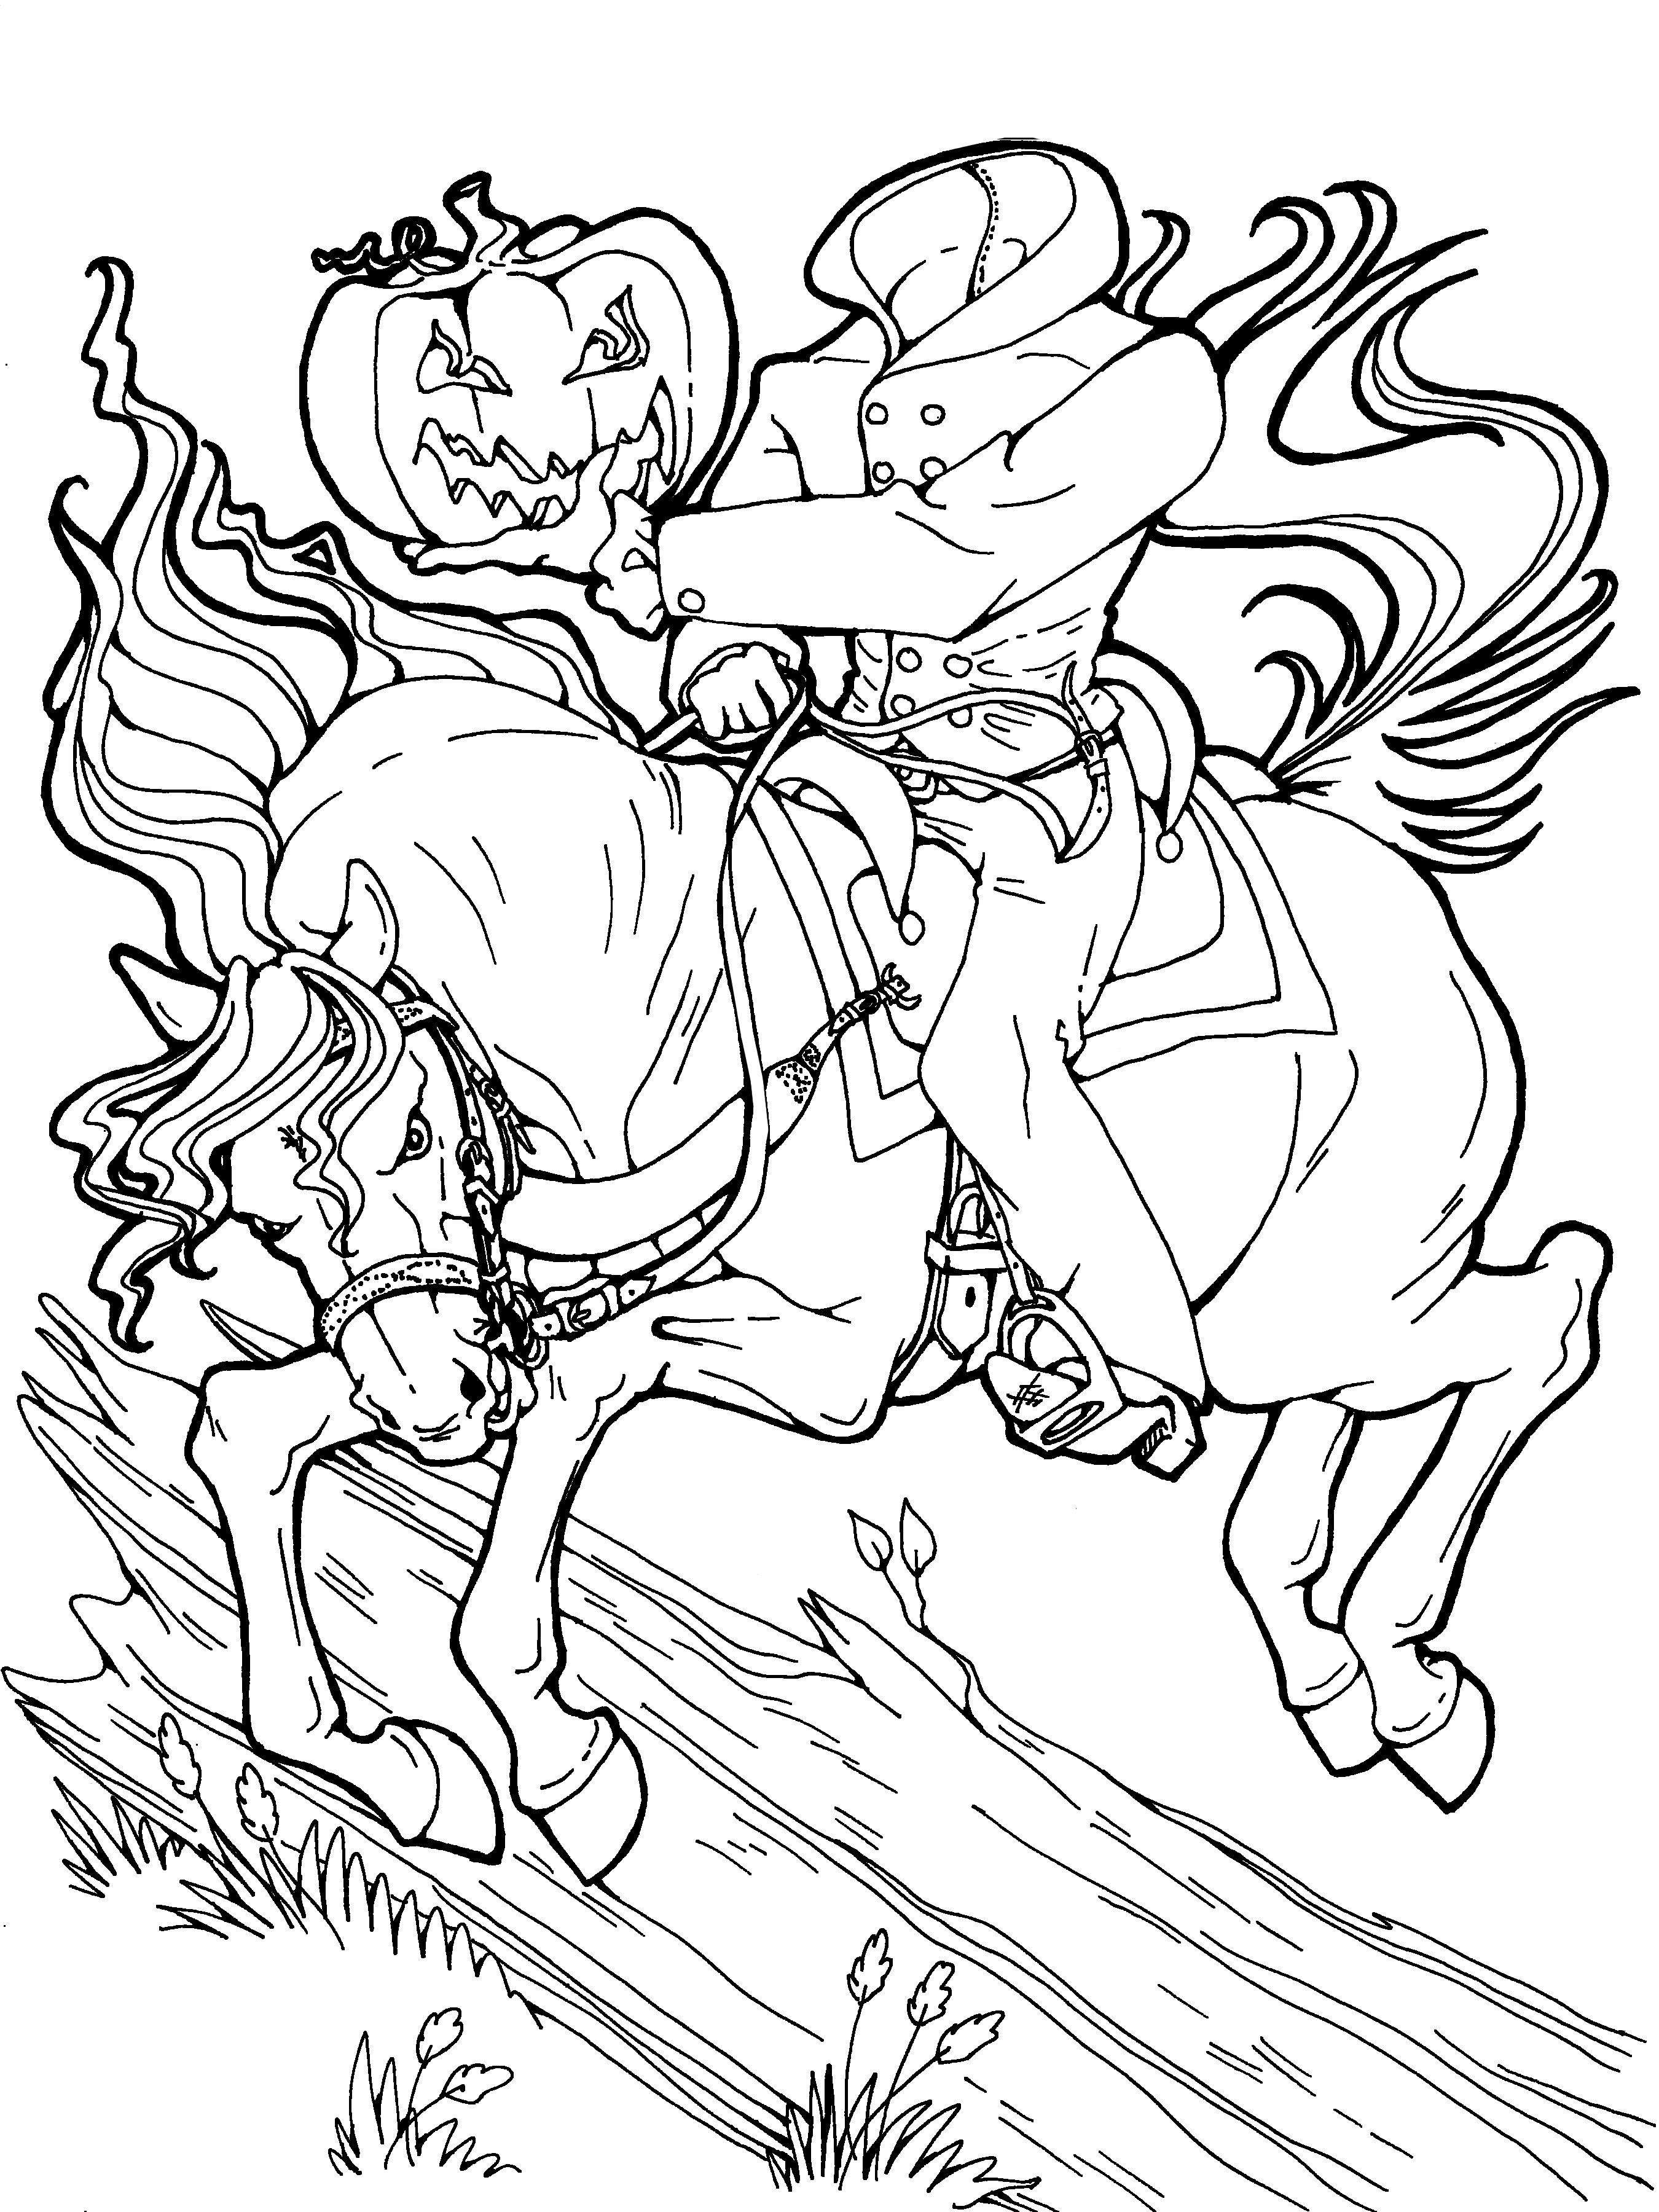 2700x3600 Headless Horseman Halloween Coloring Page. Get More Halloween